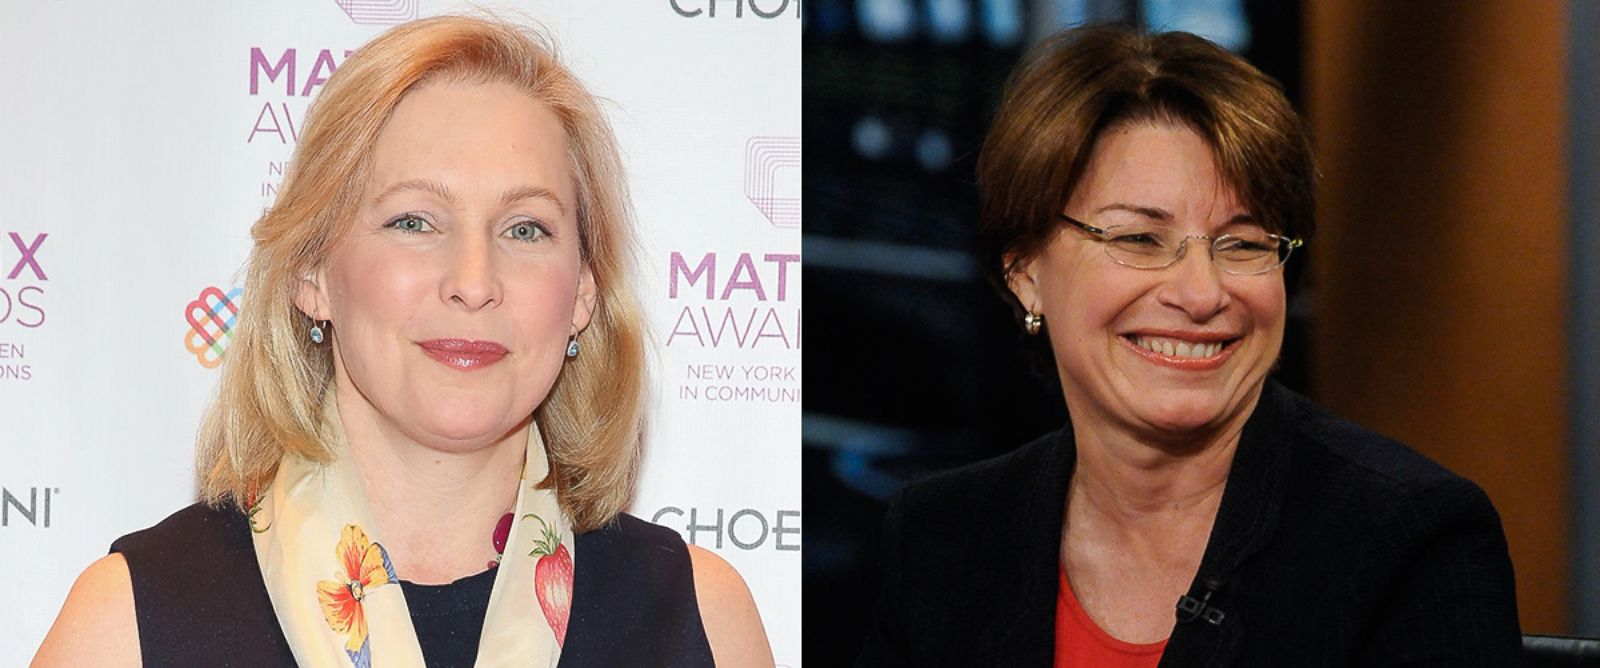 "PHOTO: Kristen Gillibrand attends the 2015 Matrix Awards, April 27, 2015 in New York. Amy Klobuchar appears on ""Meet the Press"" in Washington, April 28, 2013."